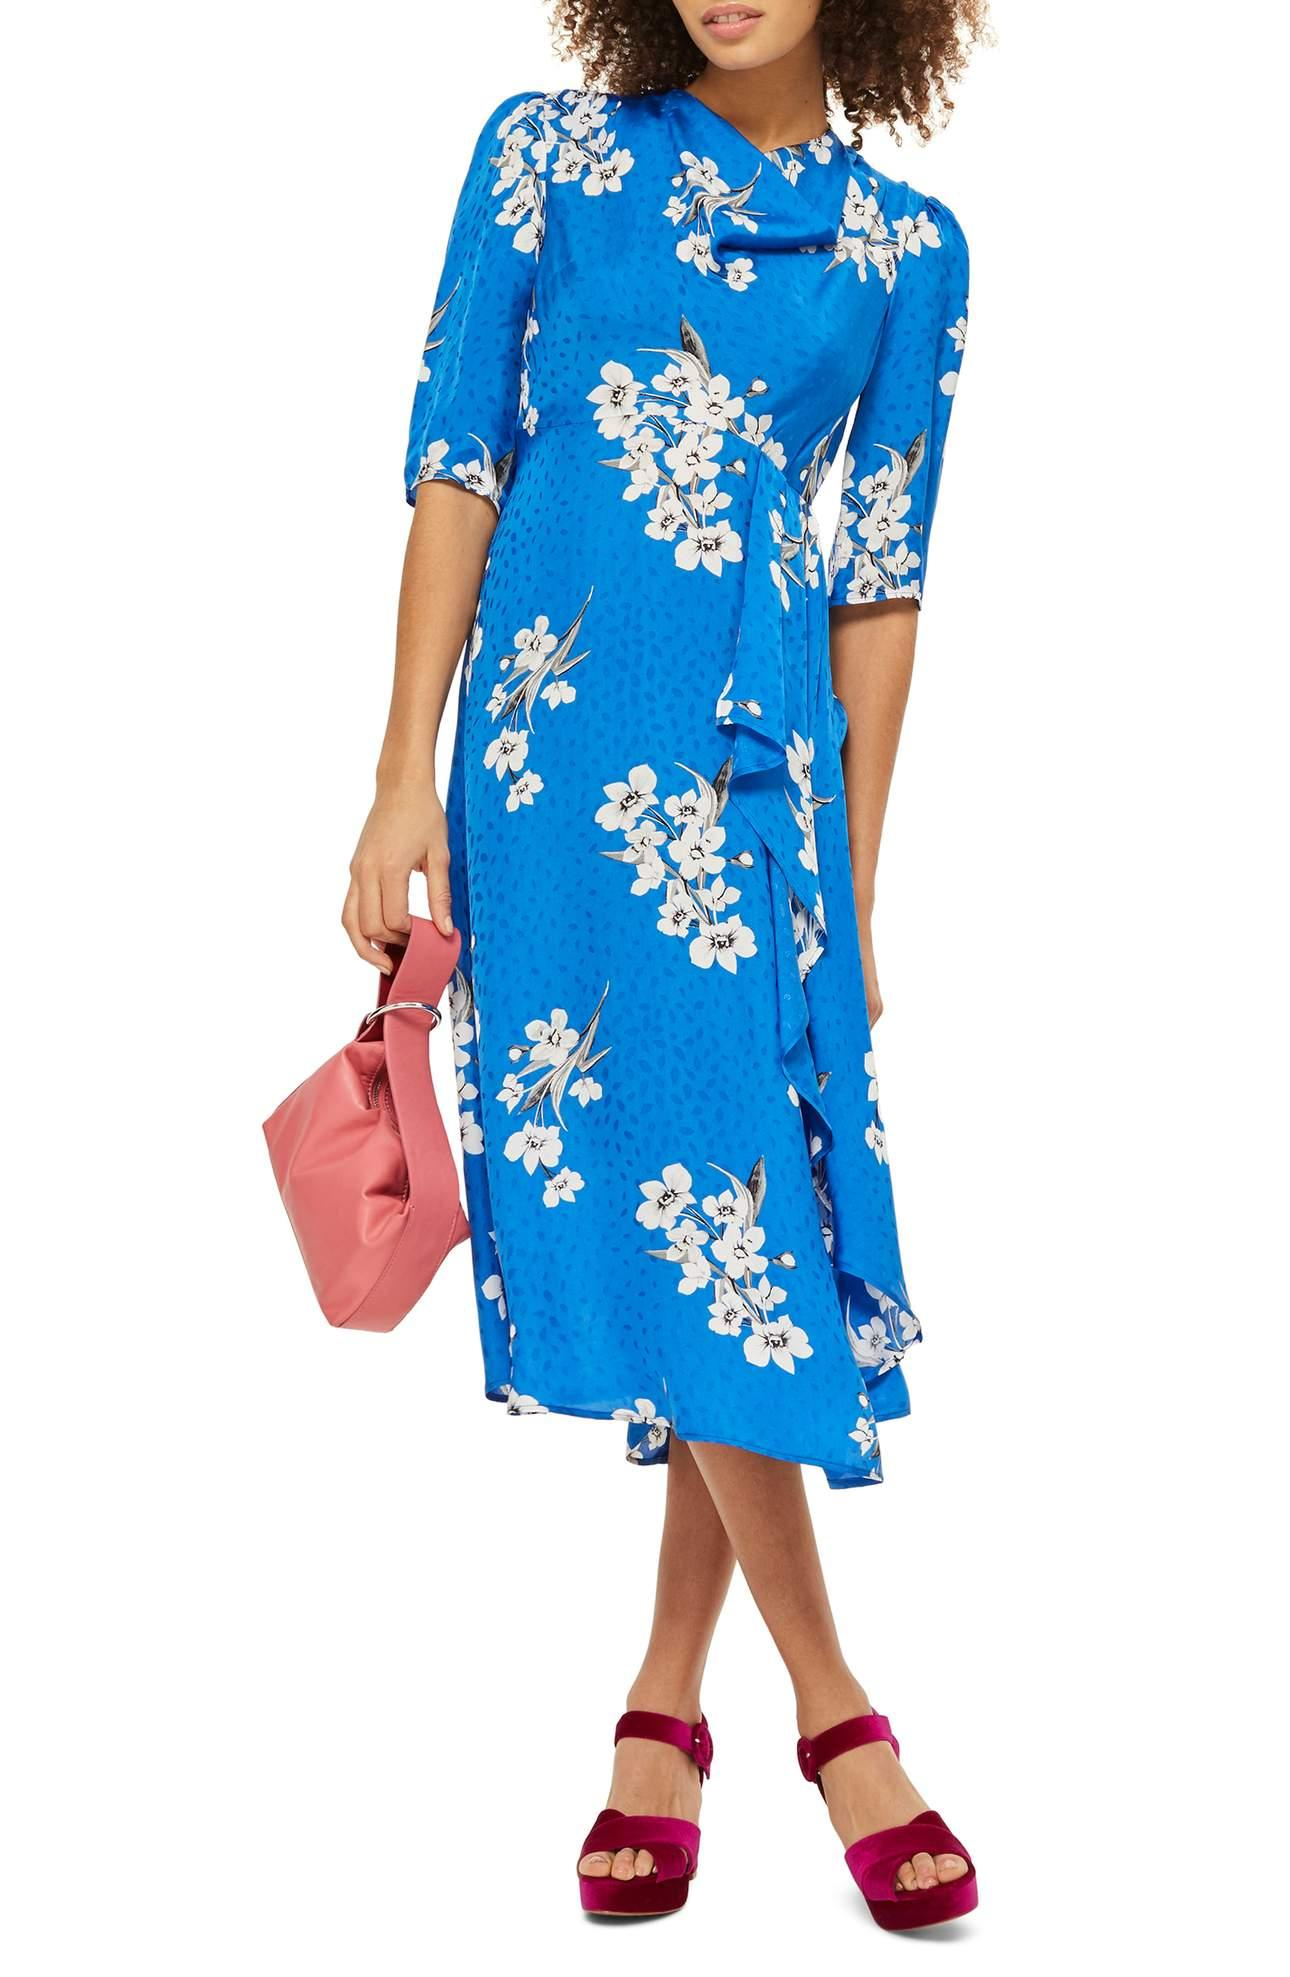 <p>Floral print is not going anywhere anytime soon.{&nbsp;} Check out this Floral Print Midi Dress/TOPSHOP.{&nbsp;}Elegant white flowers pattern a whimsical, jacquard-woven dress with a flowing hemline that falls just below the knee. Super flattering! $125.00 at Nordstrom. (Image: Nordstrom){&nbsp;}</p><p><br></p><p></p>